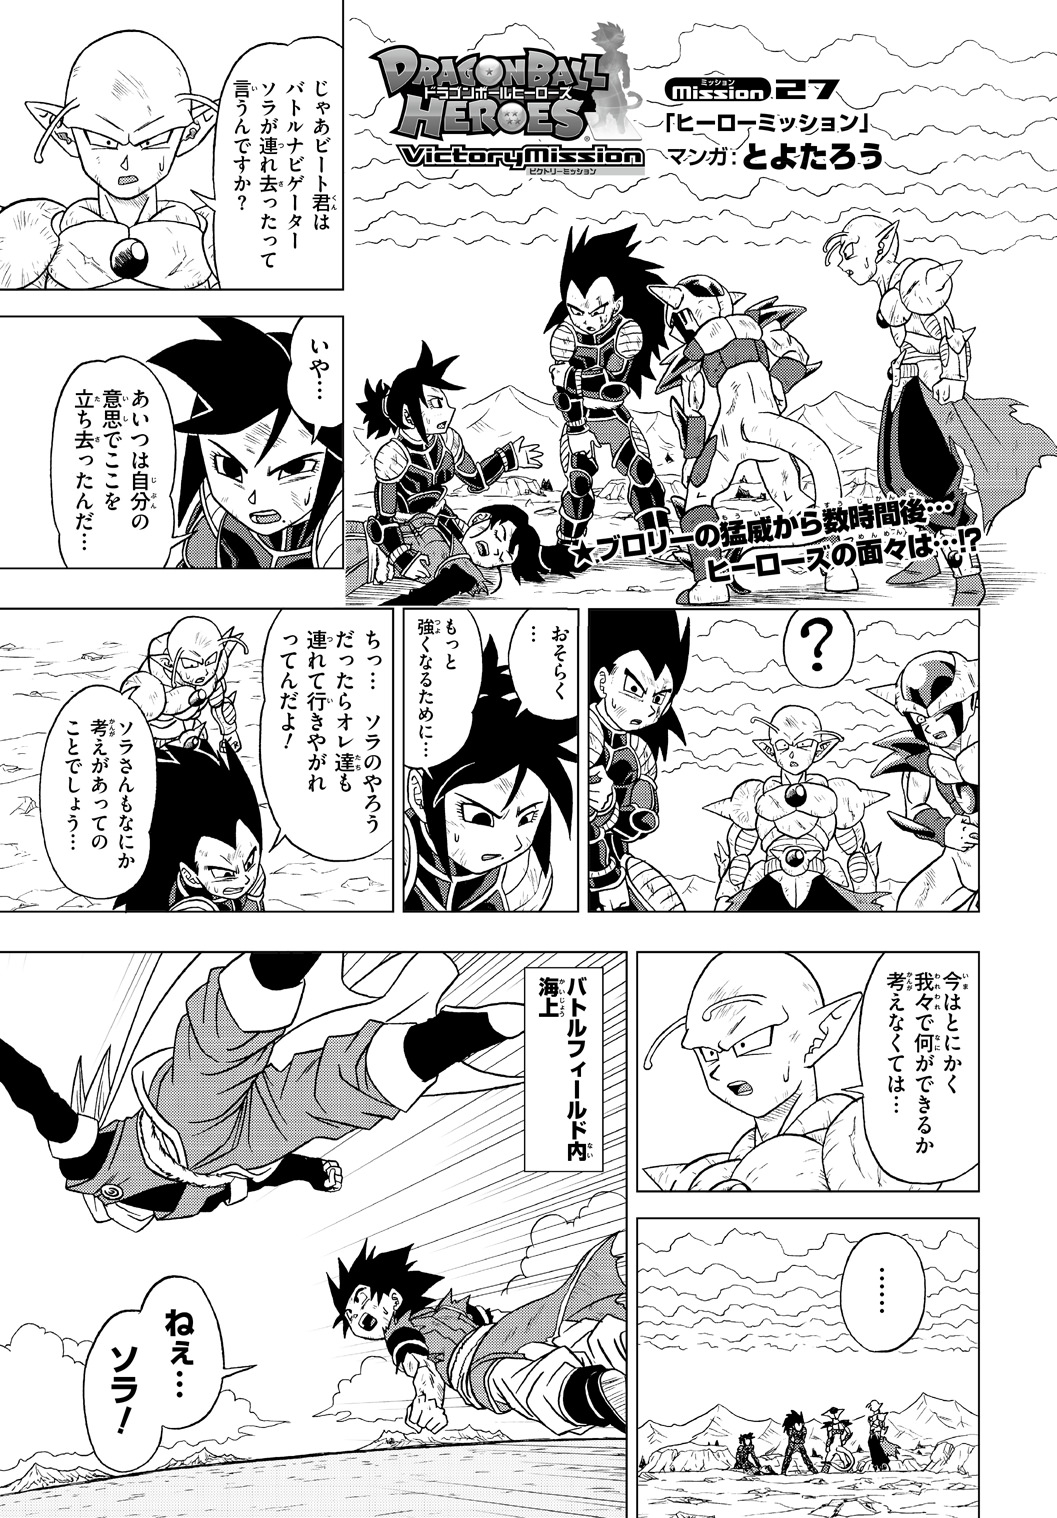 Dragon Ball Heroes Victory Mission Chapitre 027